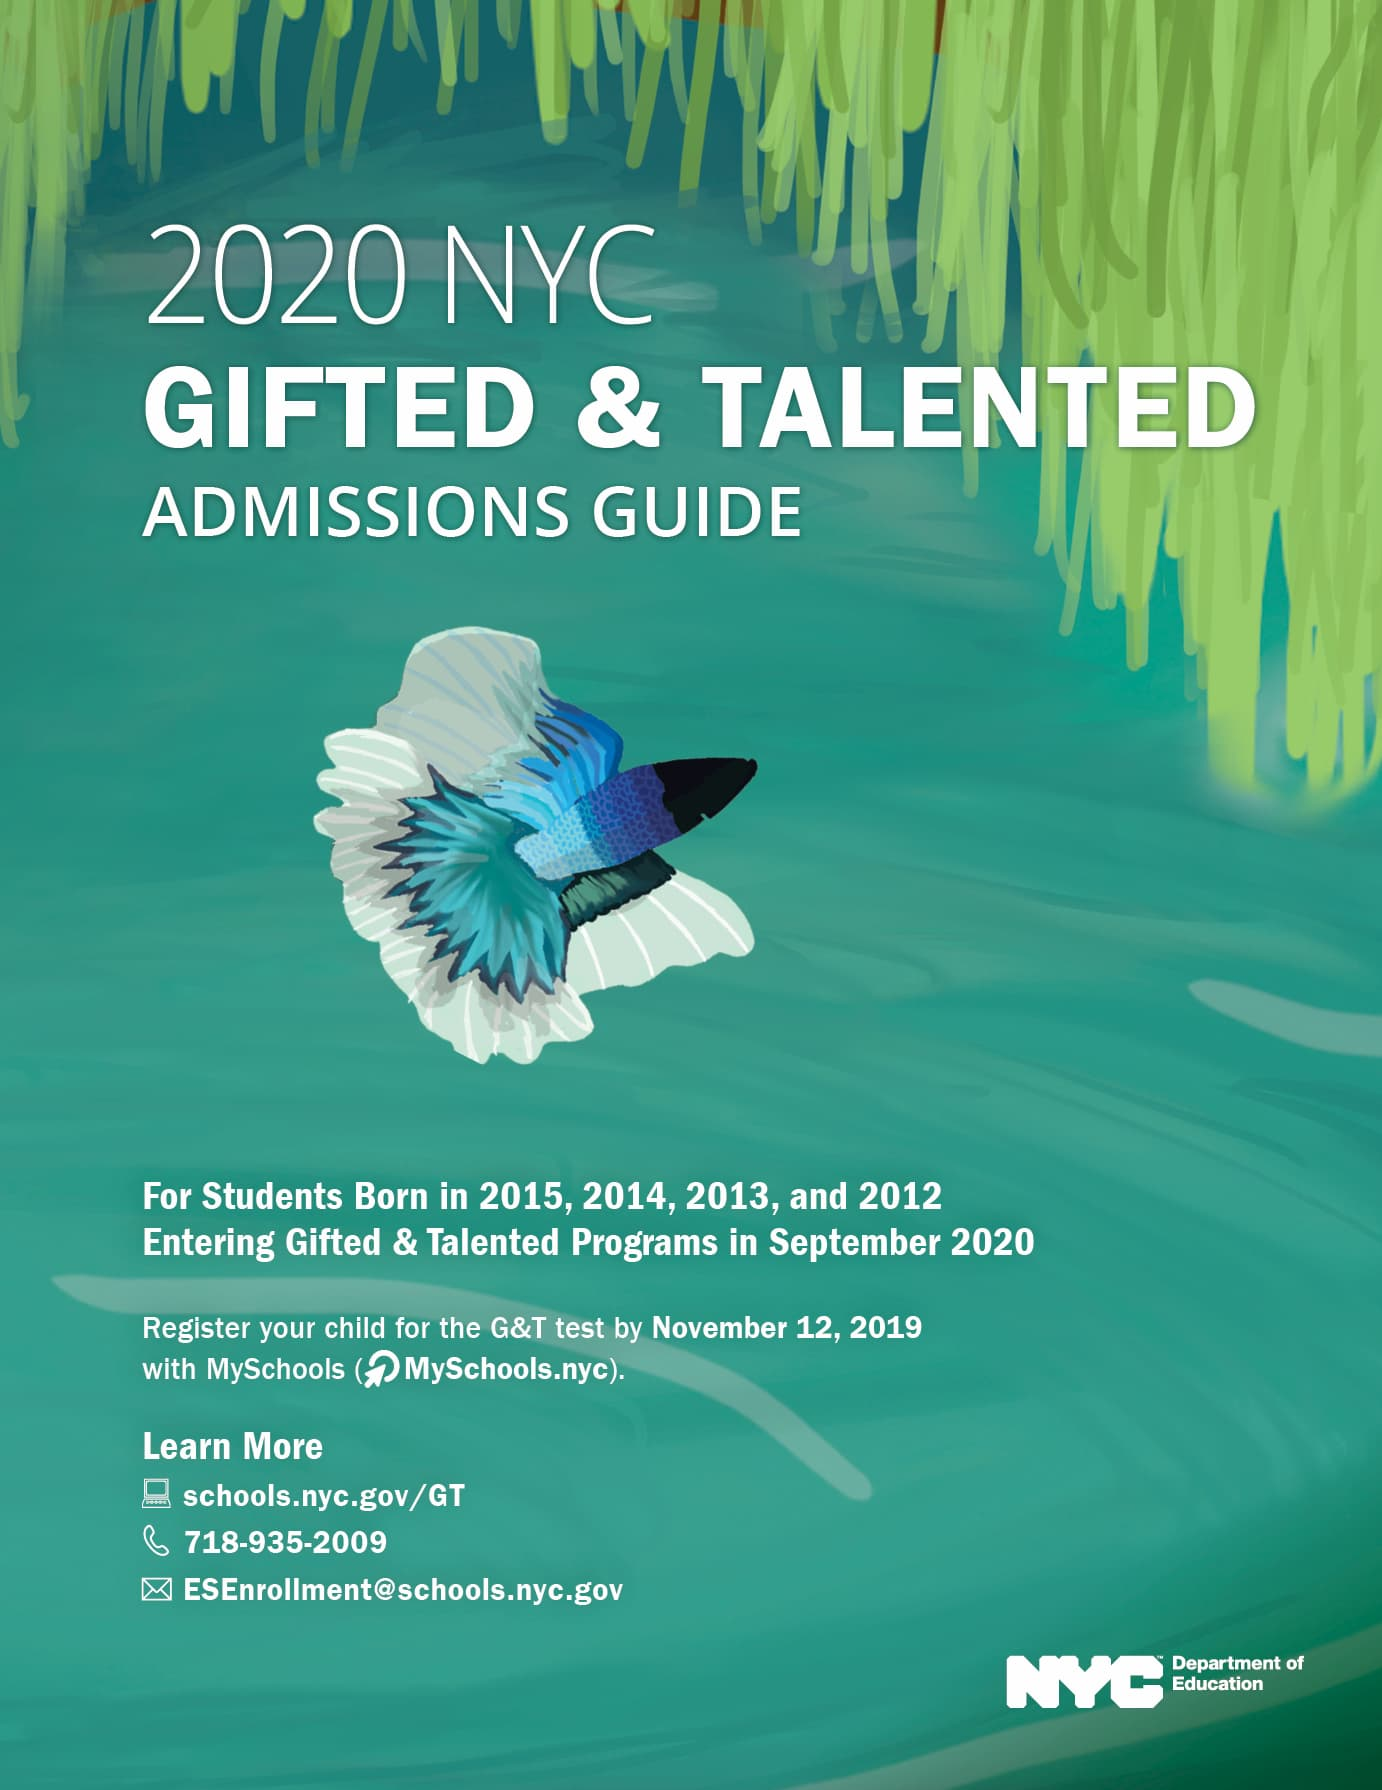 2020 NYC G&T Admission Guide Cover